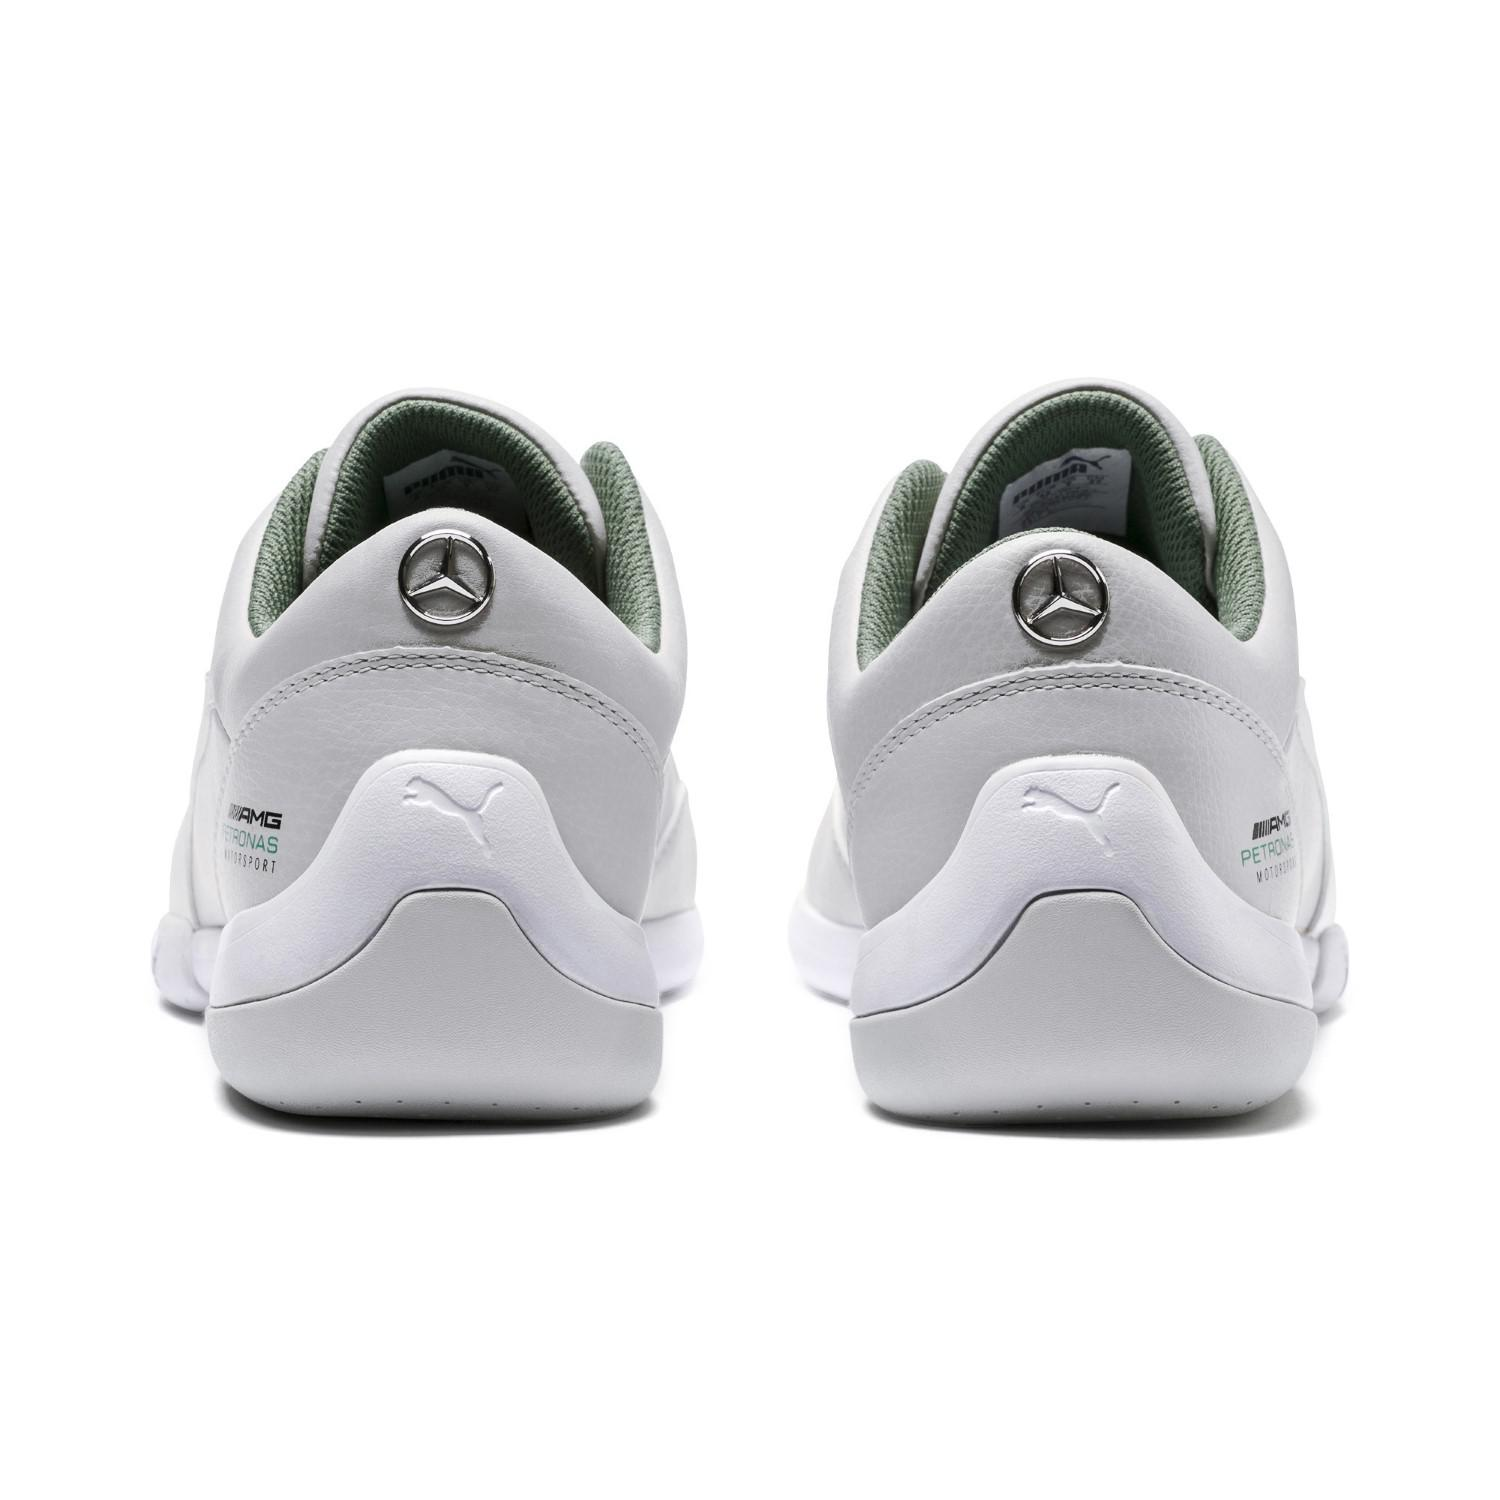 60284e3b43d Lyst - PUMA Mercedes Amg Petronas Kart Cat Iii Sneakers in White for Men